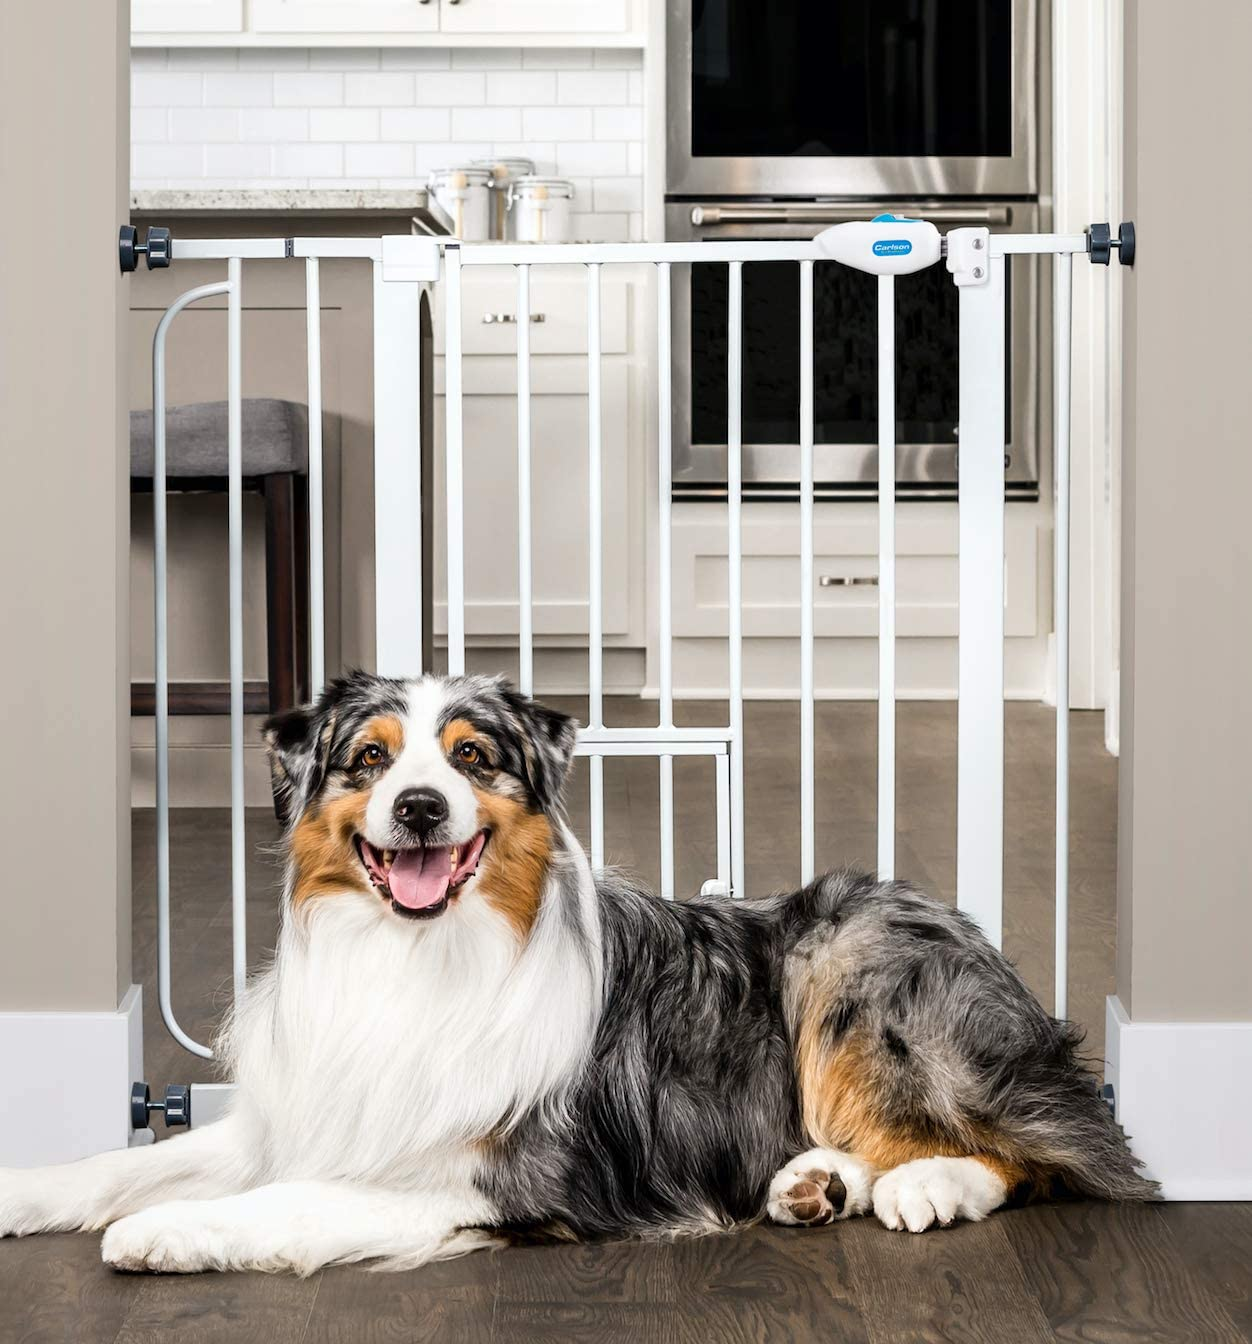 Carlson Extra Wide Walk Through Pet Gate with Small Pet Door, Includes 4-Inch Extension Kit, Pressure Mount Kit and Wall Mount Kit : Indoor Safety Gates : Pet Supplies